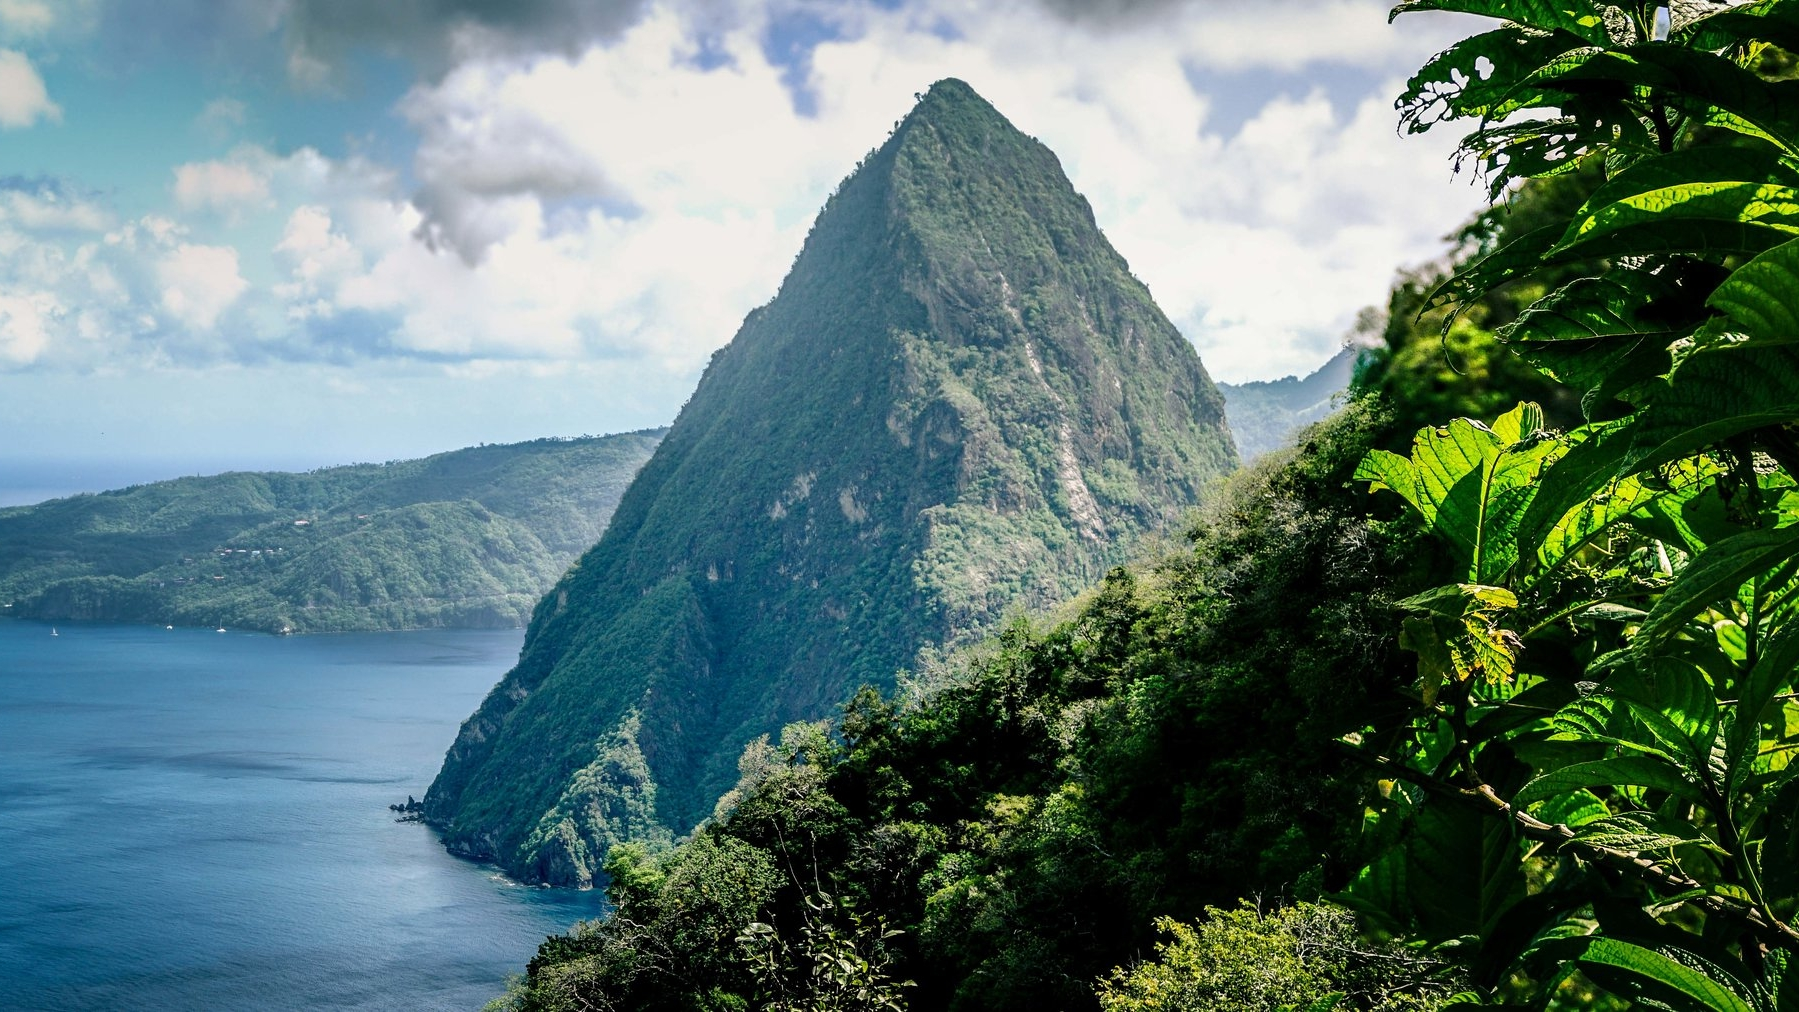 Adventures - St, Lucia is a hiker and divers paradise - including every adventure seeker in between.  With so much to do it's easy to become overwhelmed by the number of tours, excursions, and sightseeing. But it doesn't have to be if you do your research ahead of time!